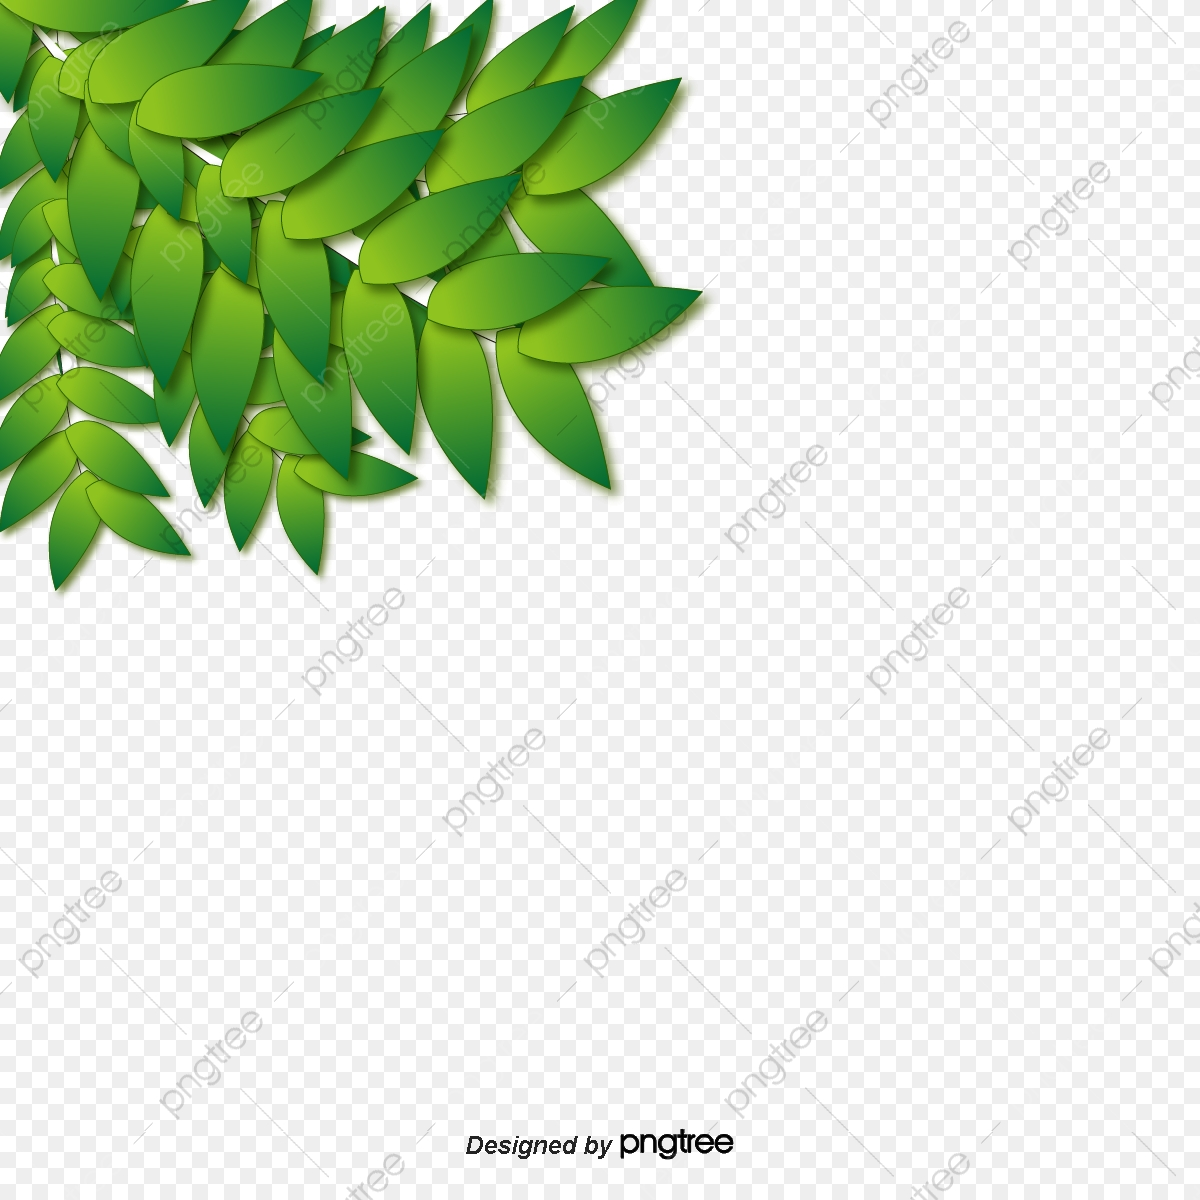 Christmas Branch Png.Vector Christmas Branch Tree Clipart Branch Clipart